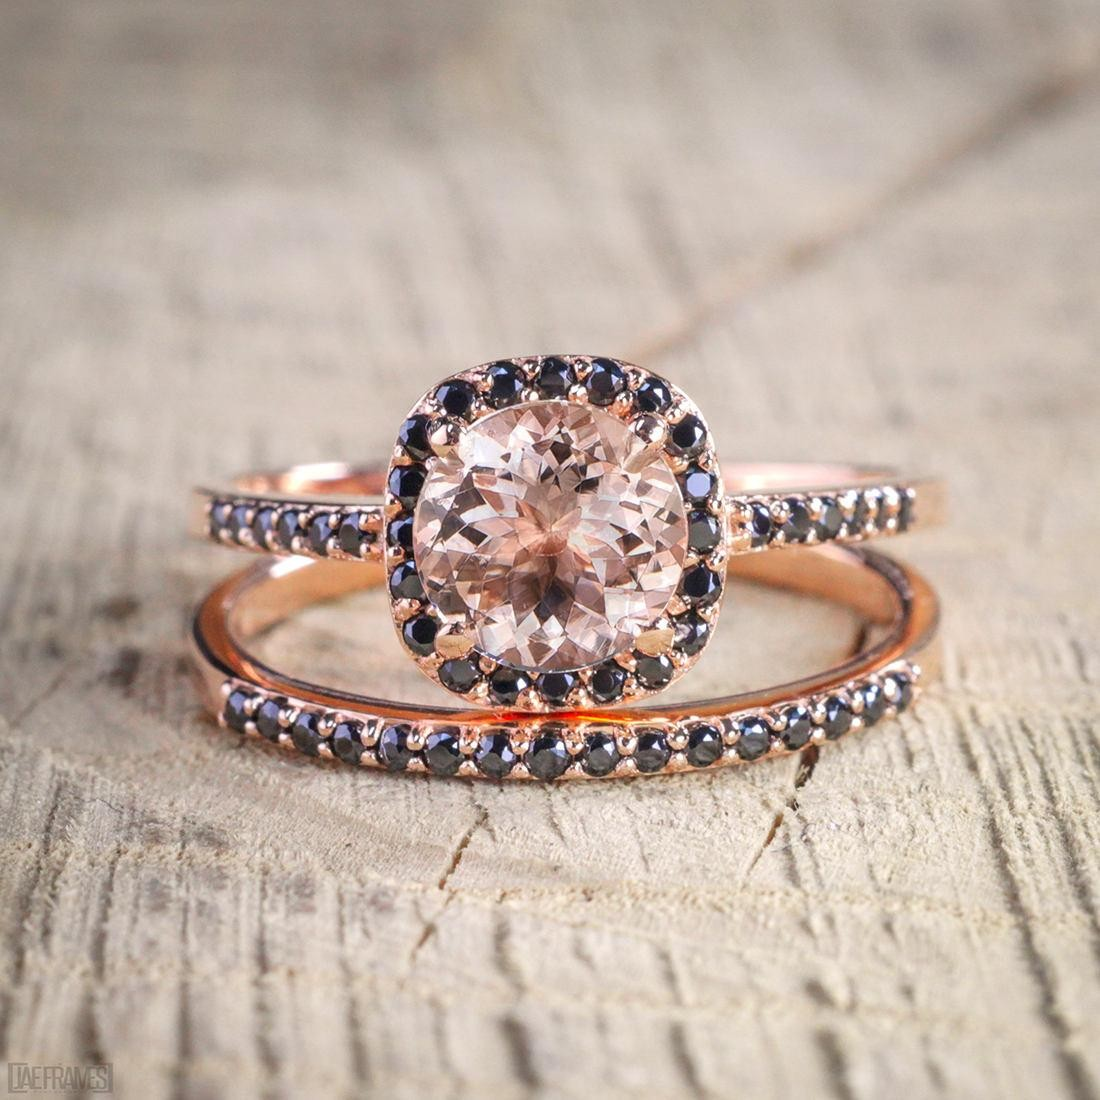 Limited Time 2 Carat Peach Pink Morganite Round Cut And Black Diamond Engagement Bridal Wedding Ring Set In 10k Rose Gold